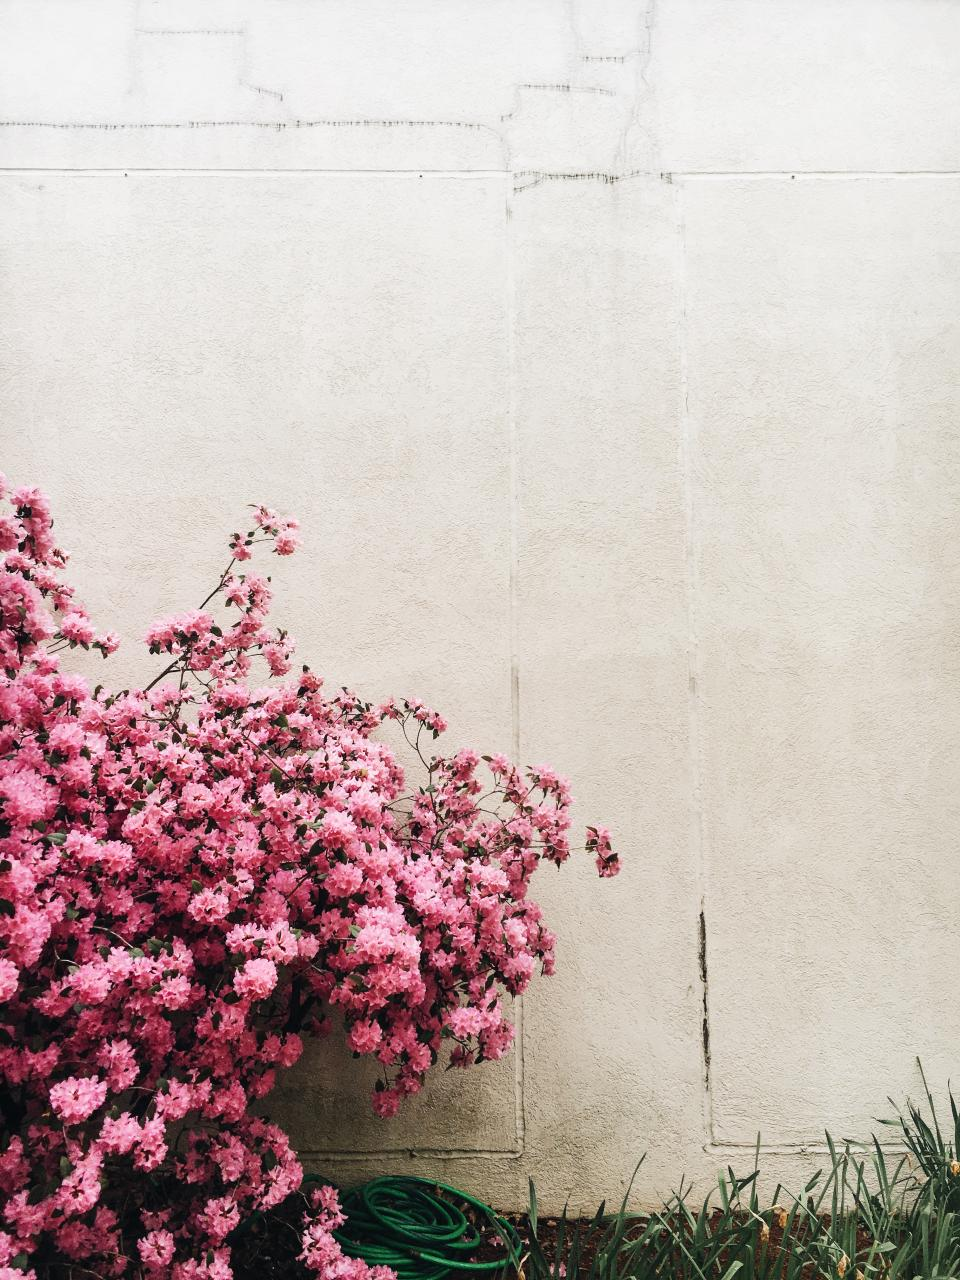 wall outdoor grass pink flowers nature plants